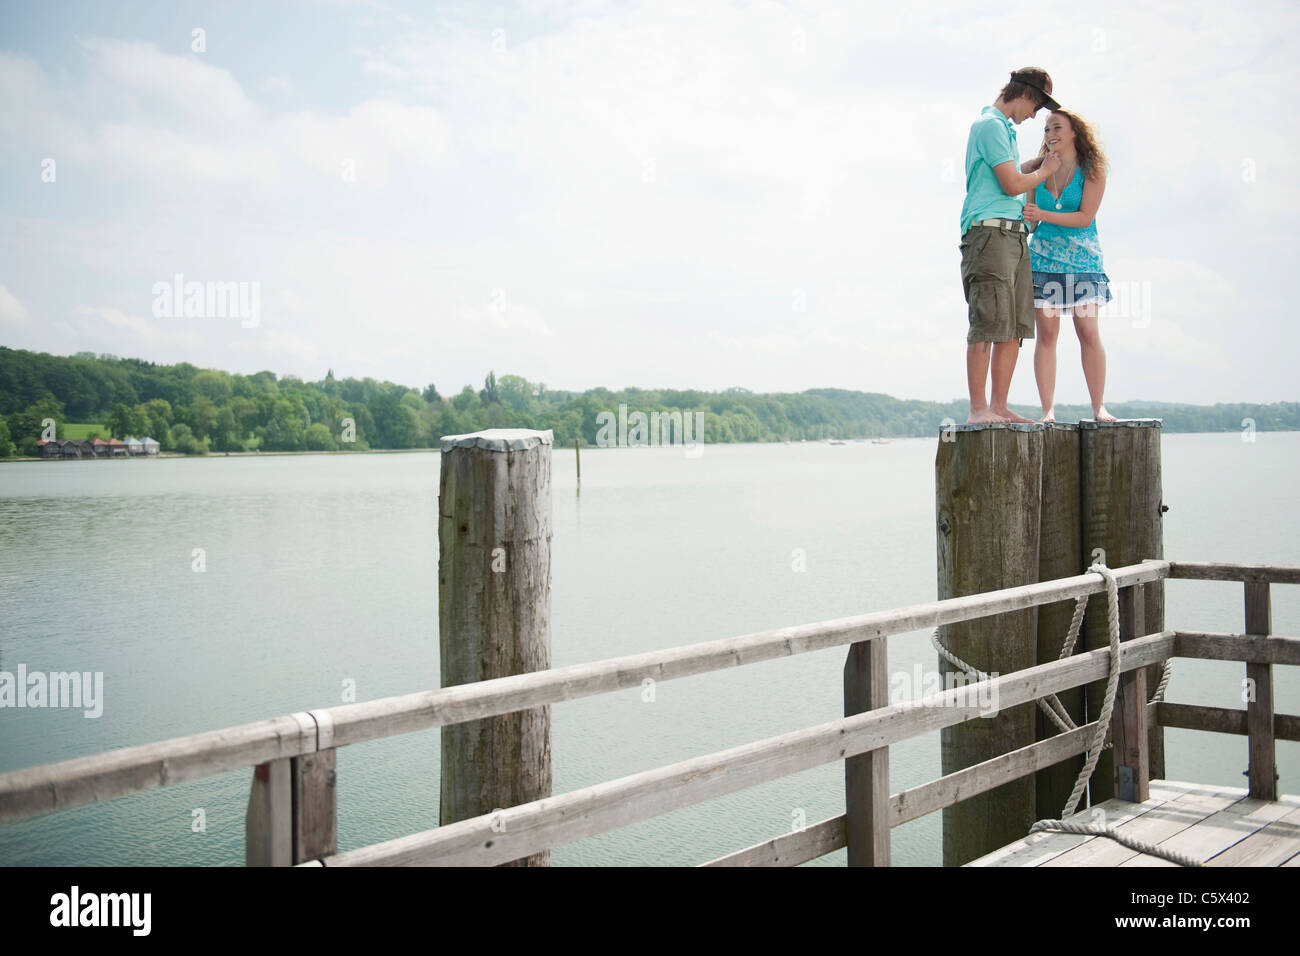 Germany, Bavaria, Ammersee, Young couple standing on wooden post - Stock Image